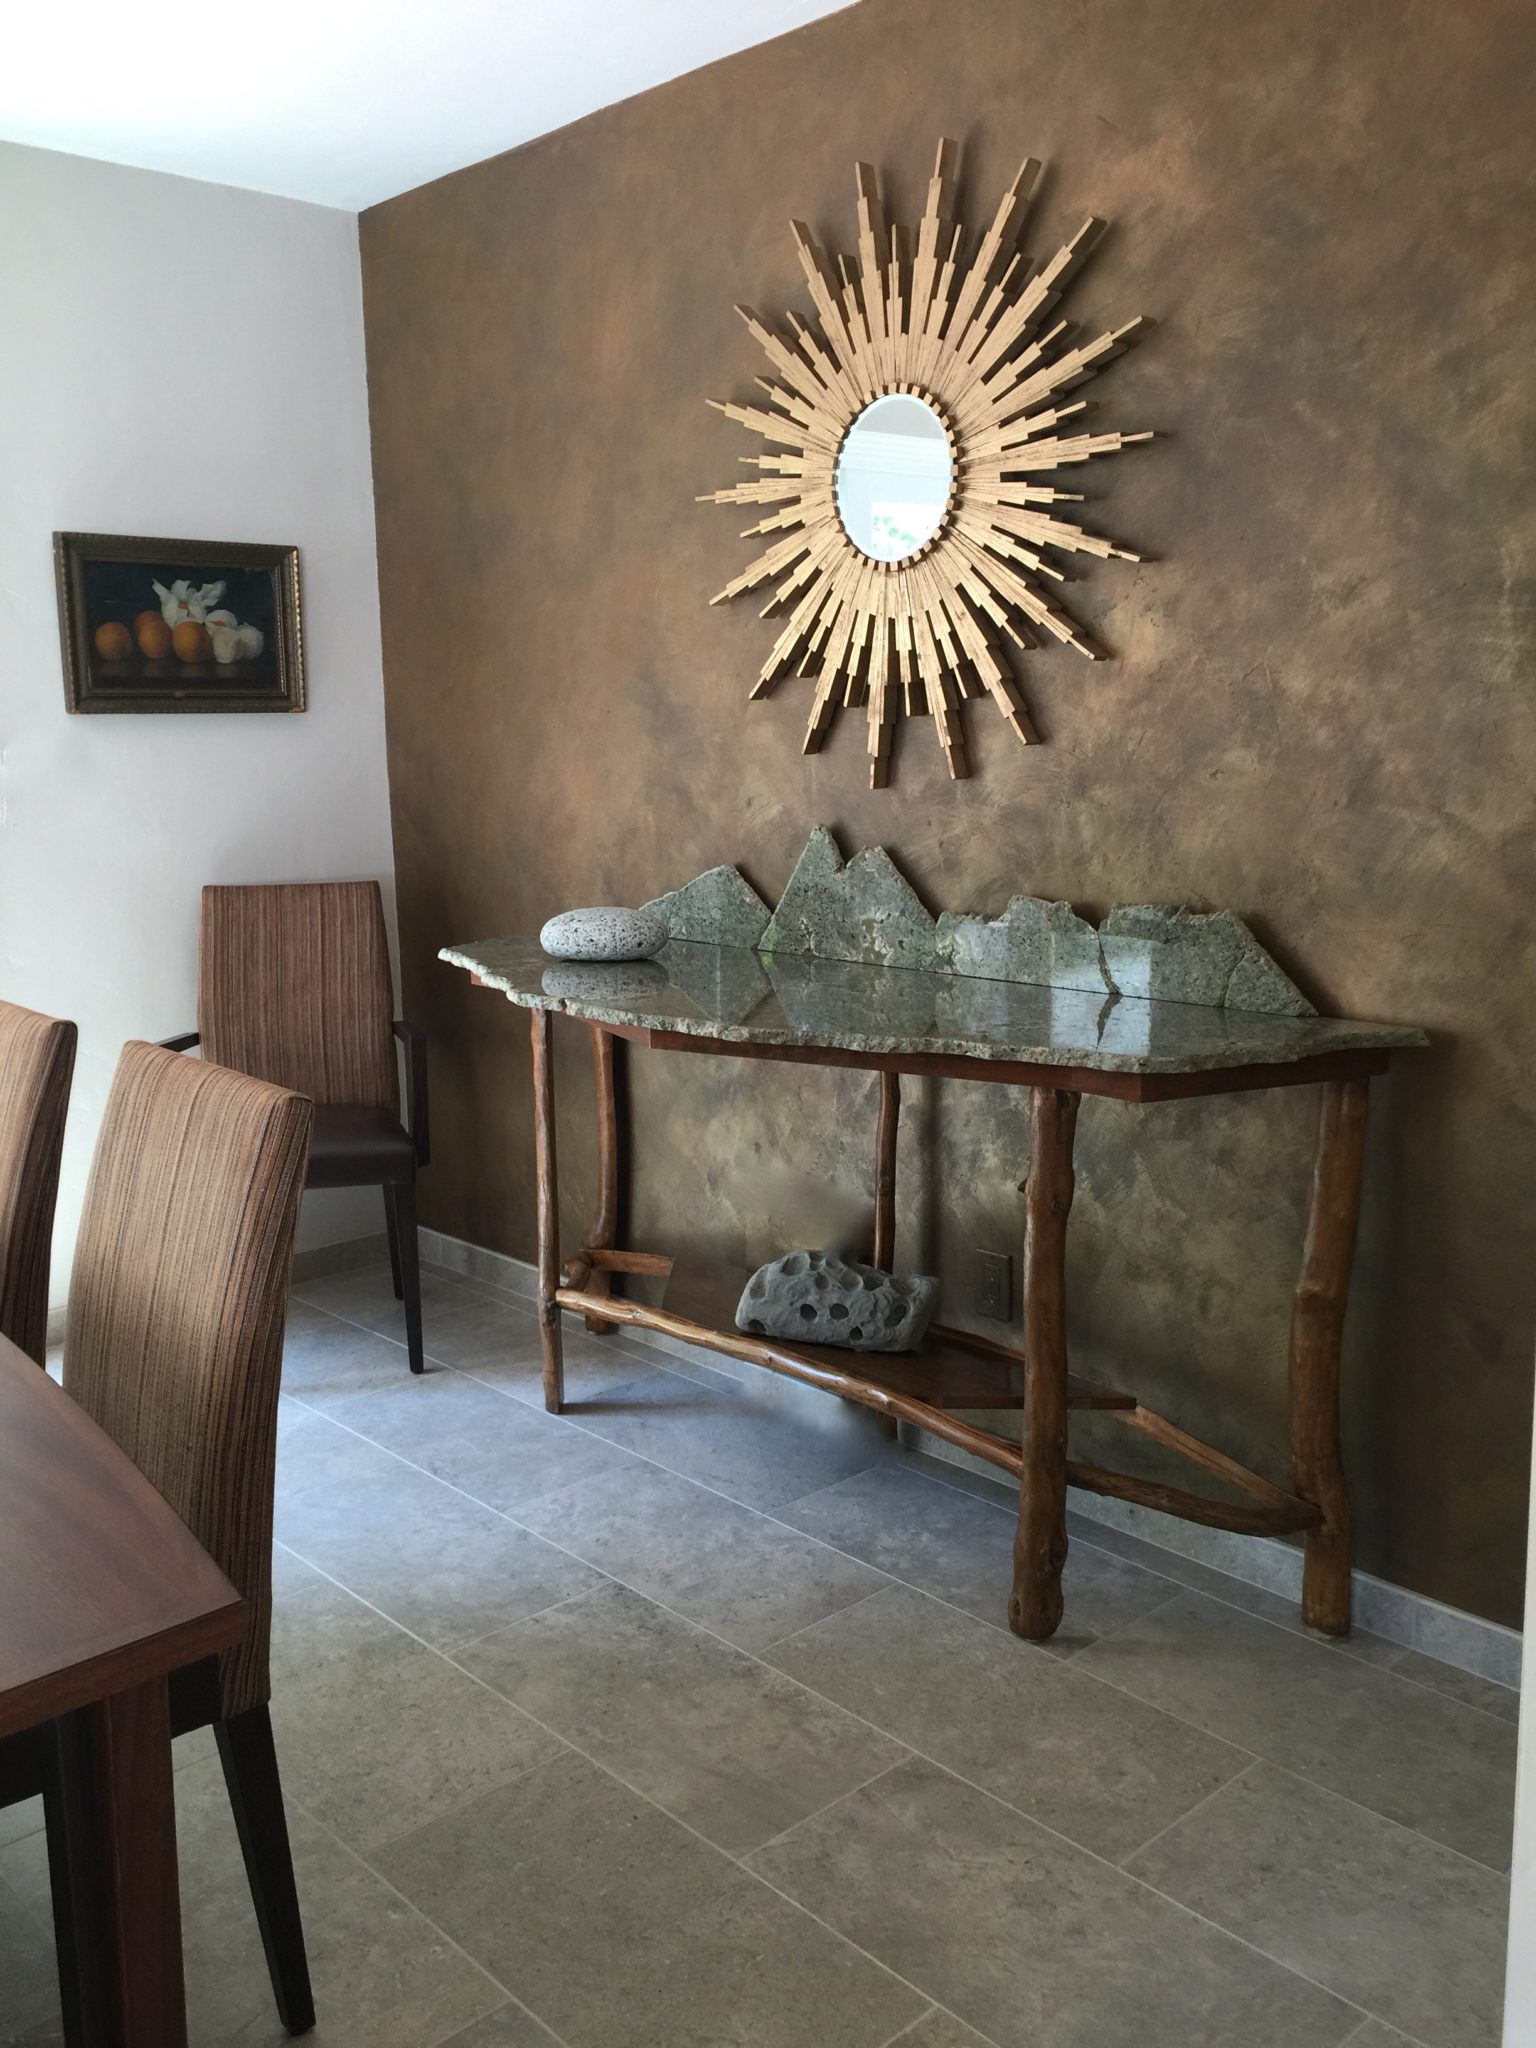 Furniture and object dart